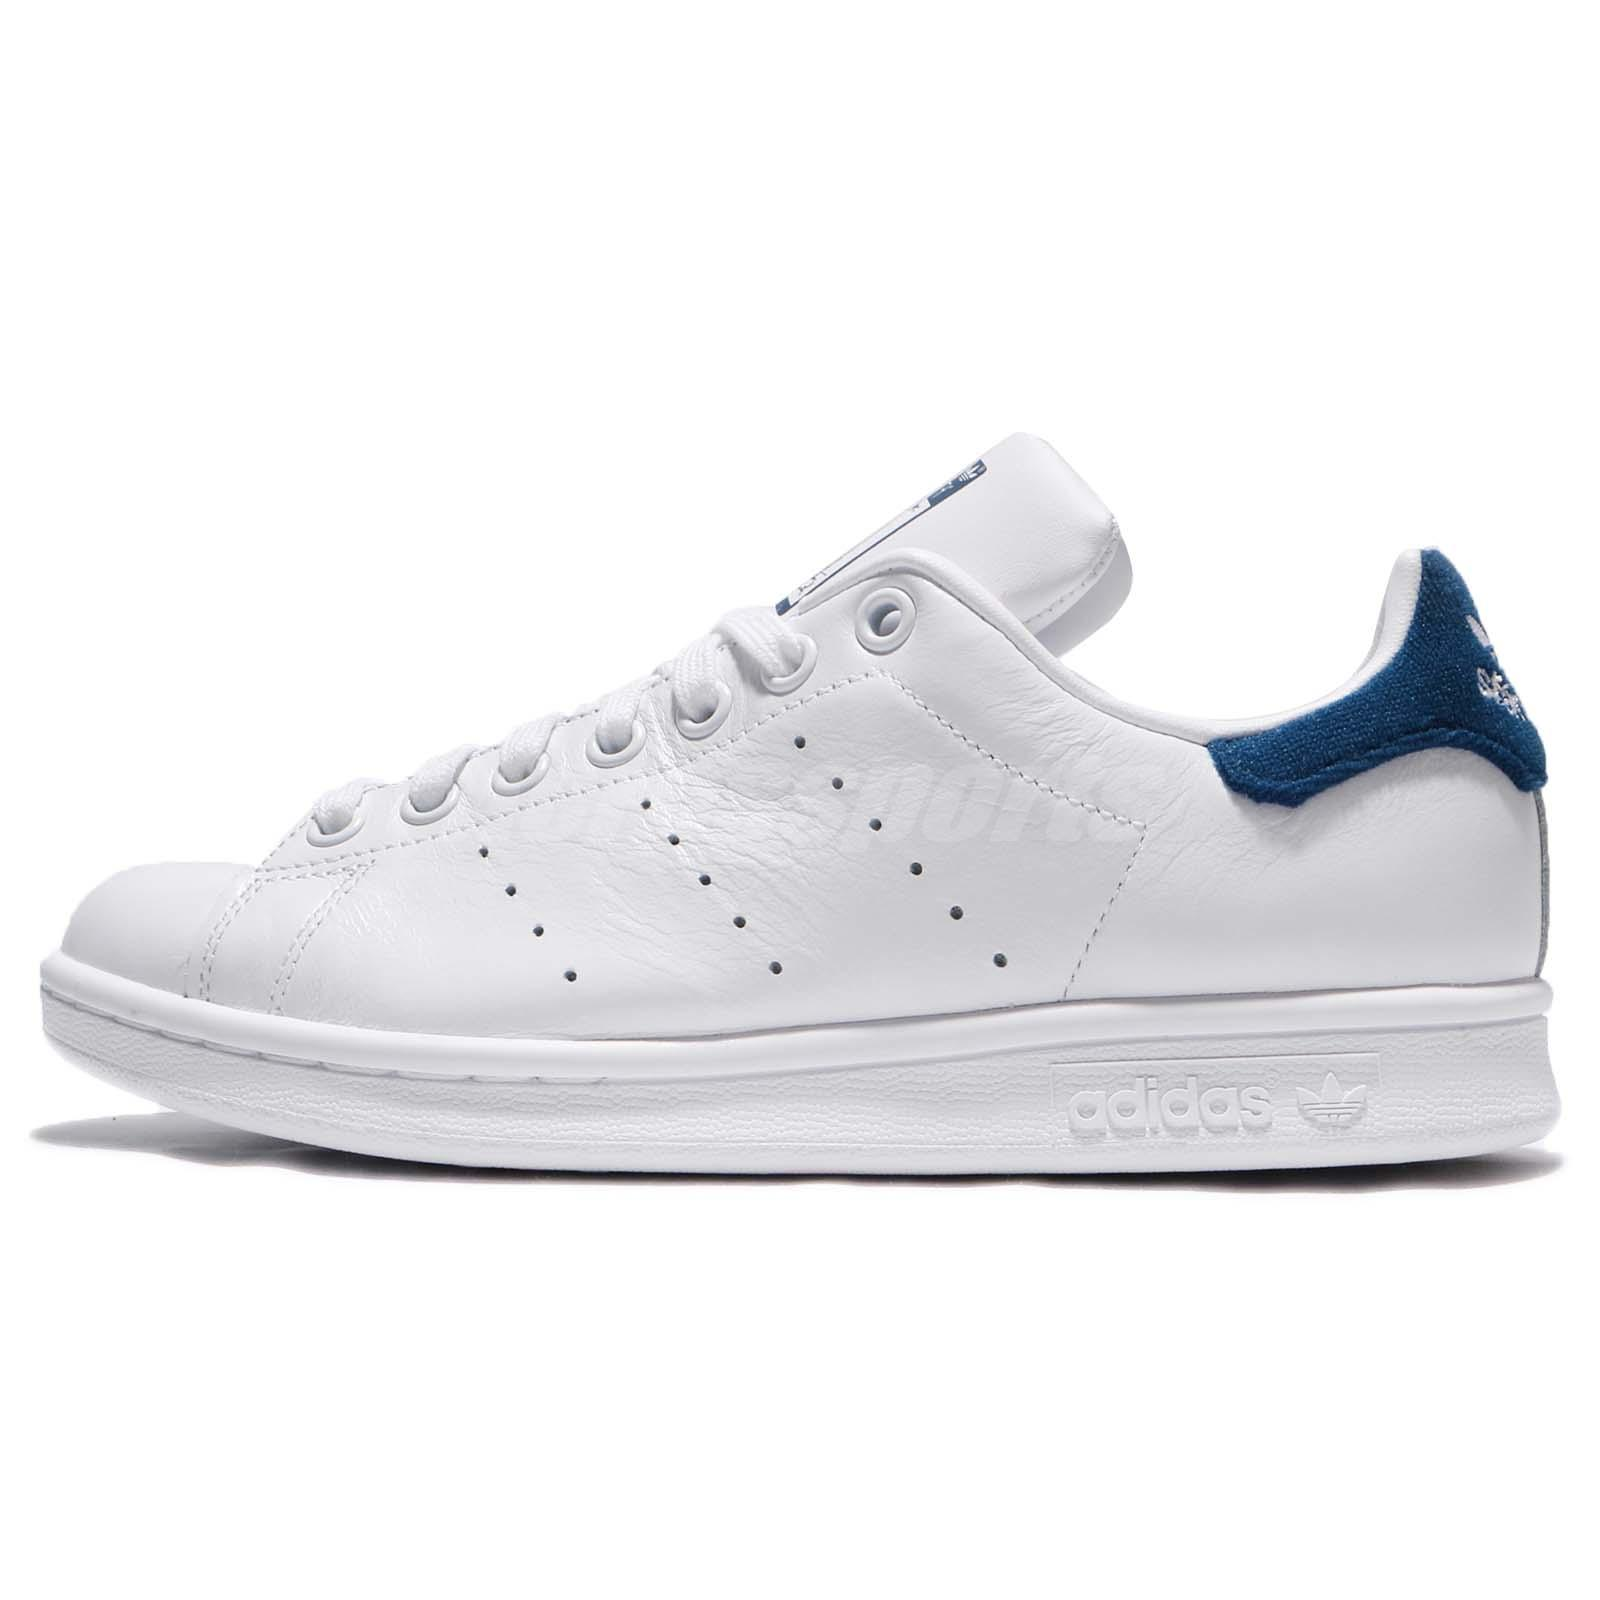 stan smith adidas blue